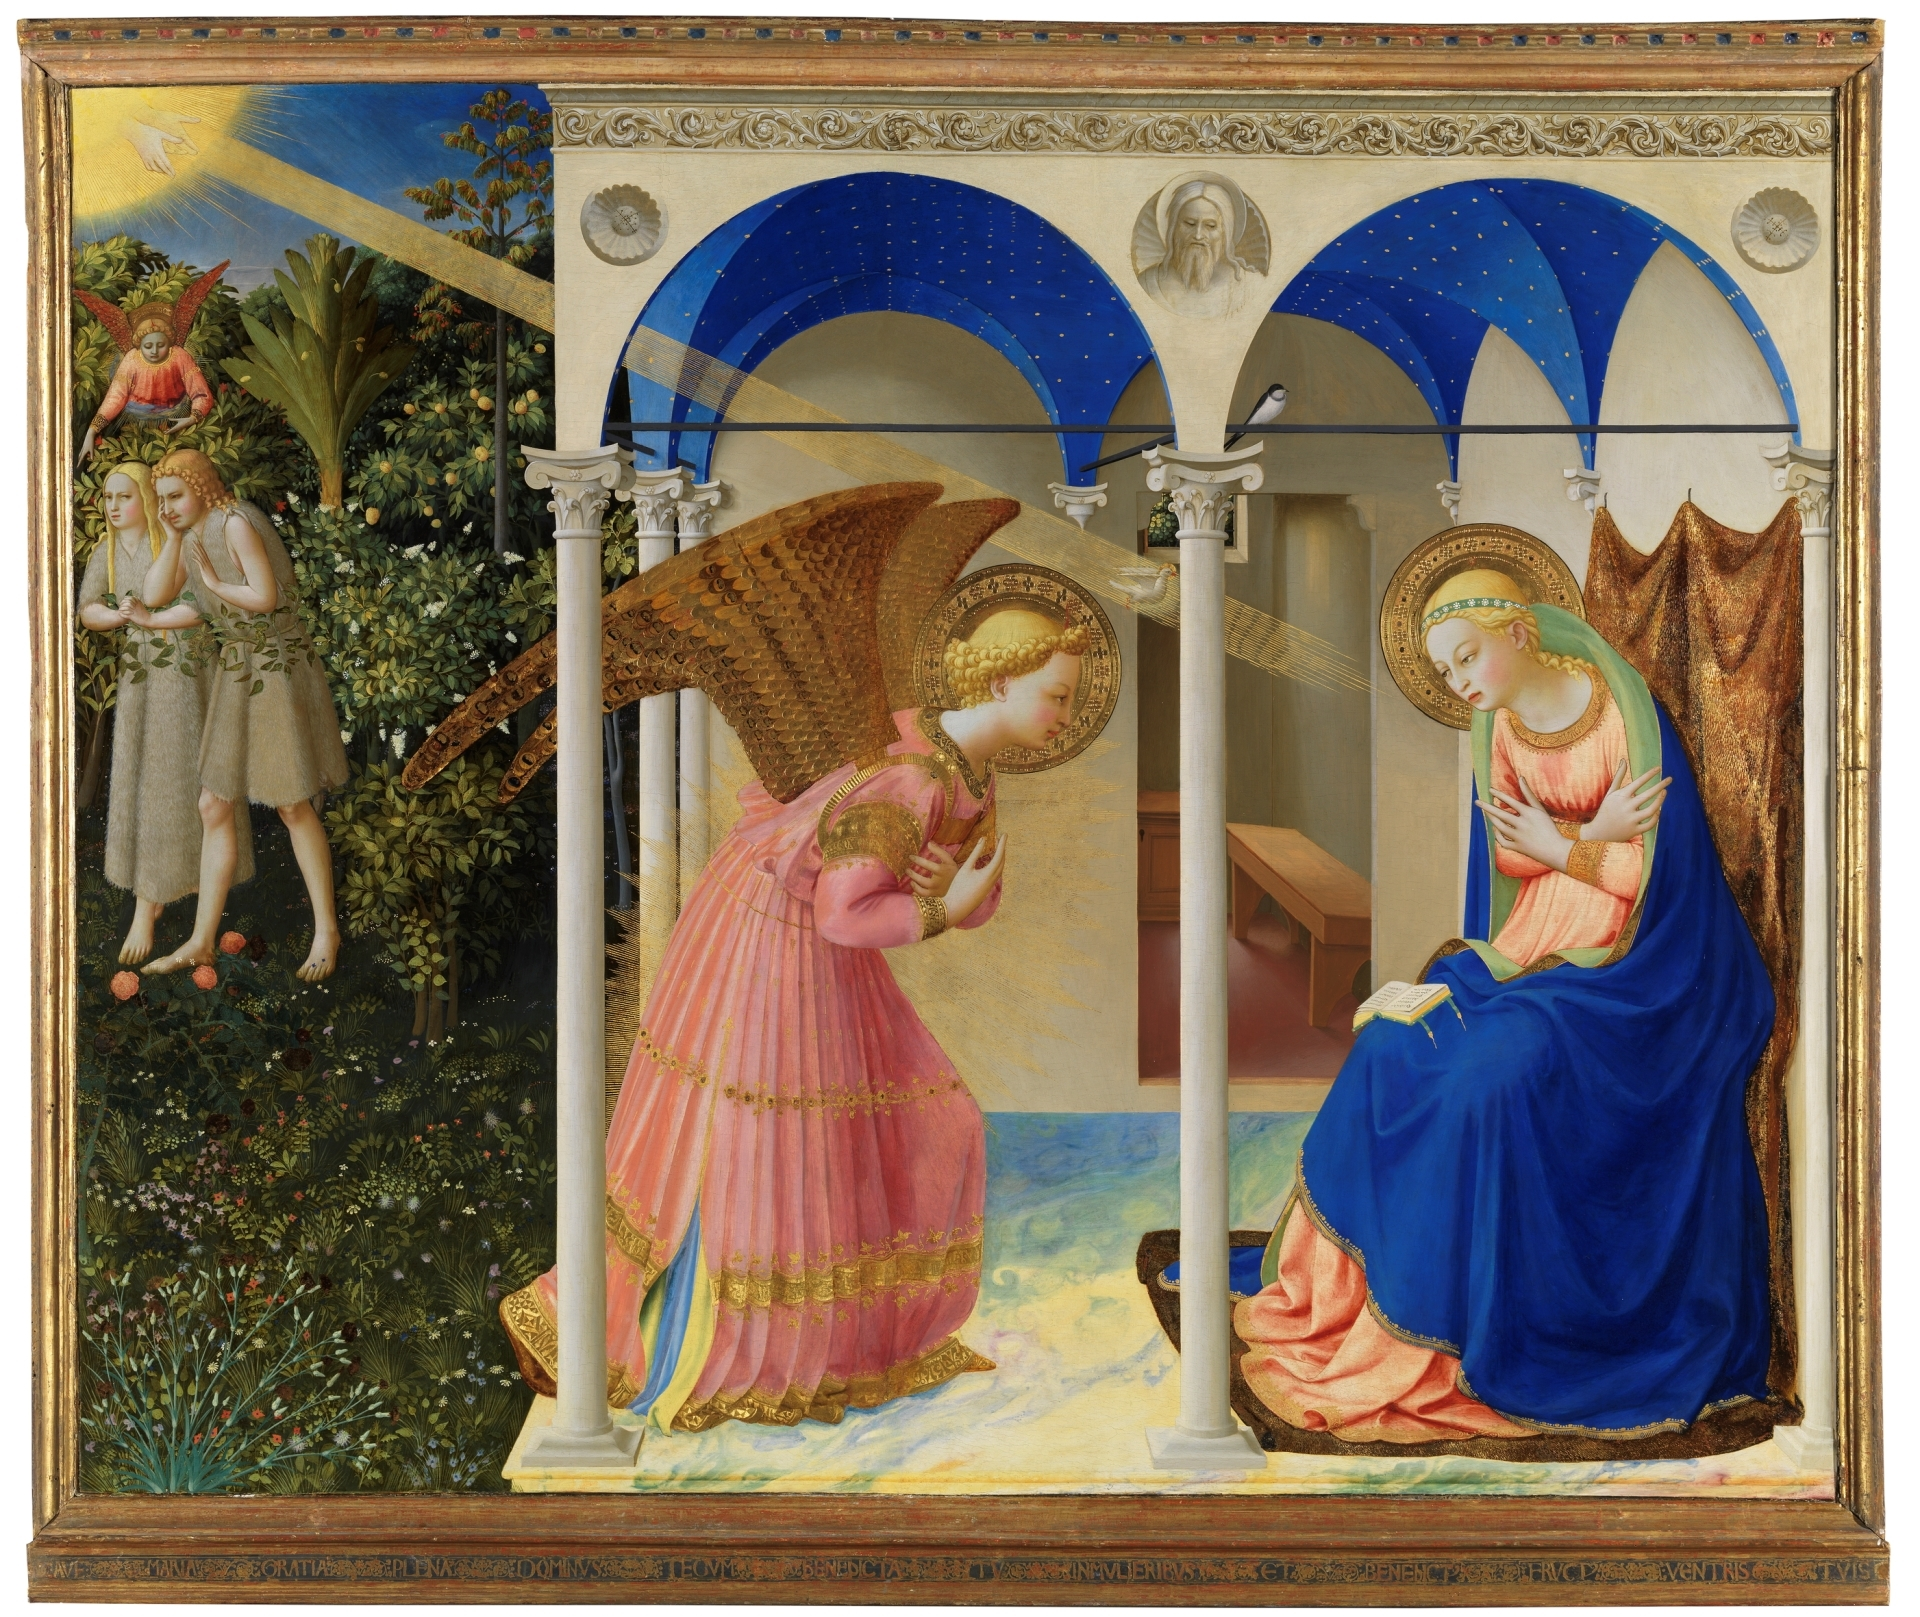 857b846f Captive Beauty. Fra Angelico to Fortuny - Exhibition - Museo ...